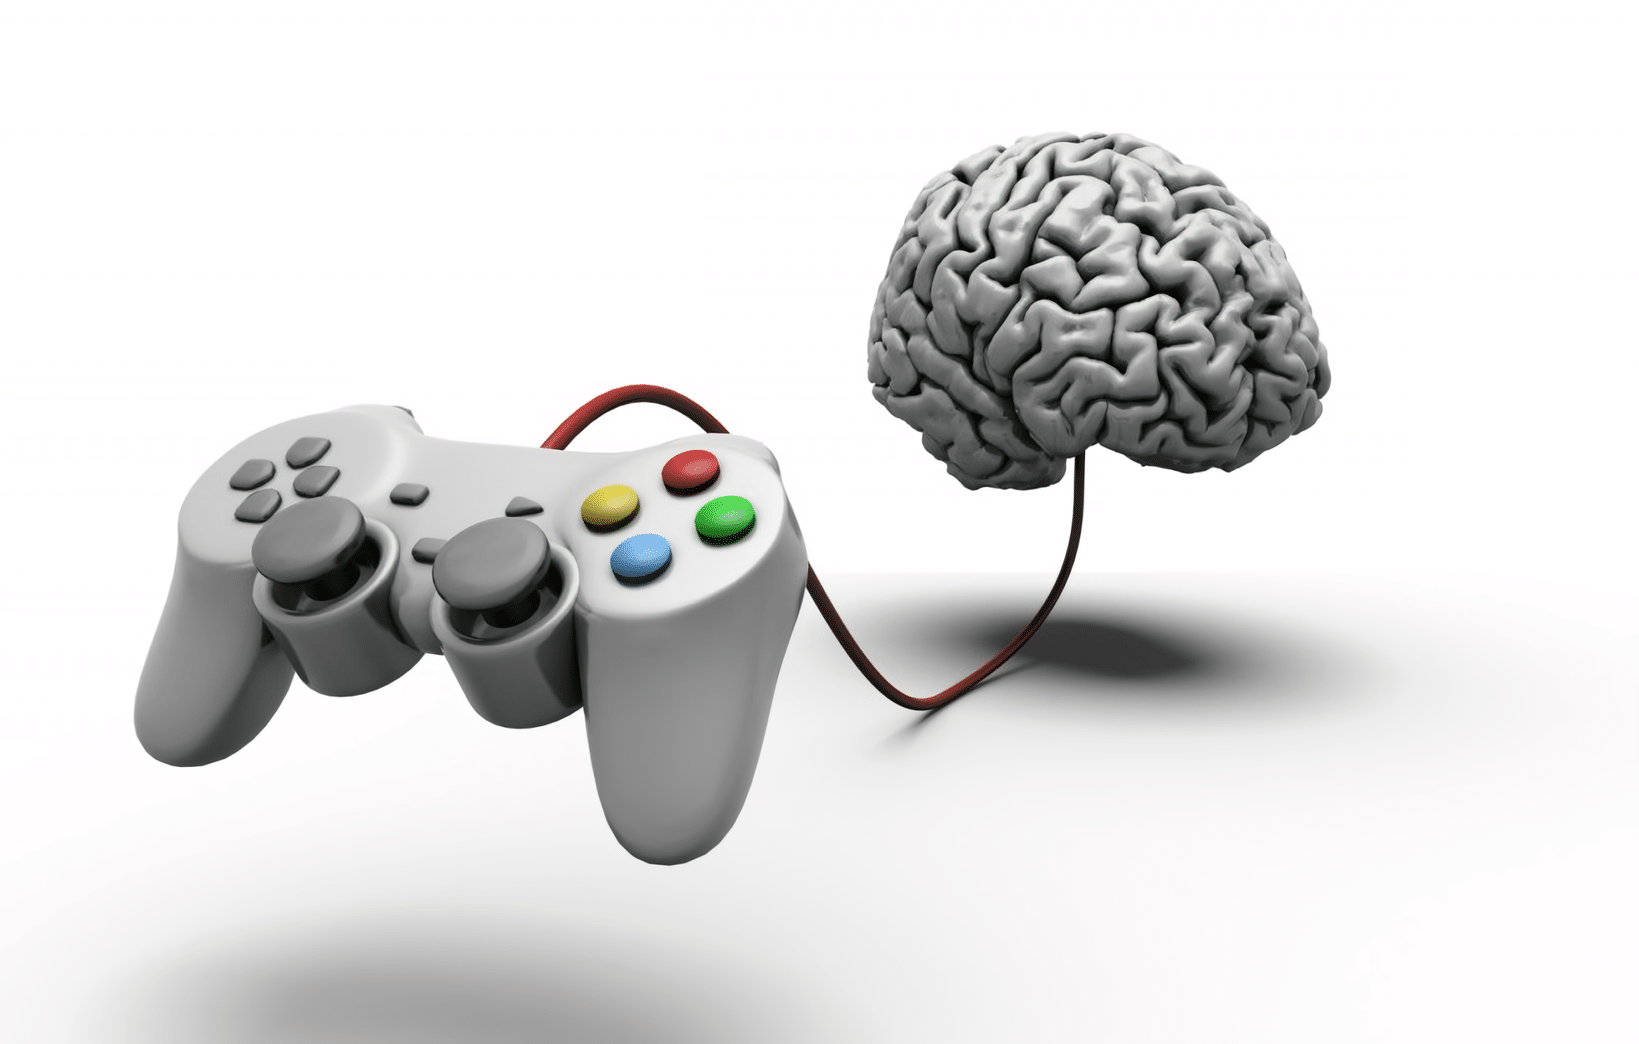 3d image of a brain connected to a video game controller